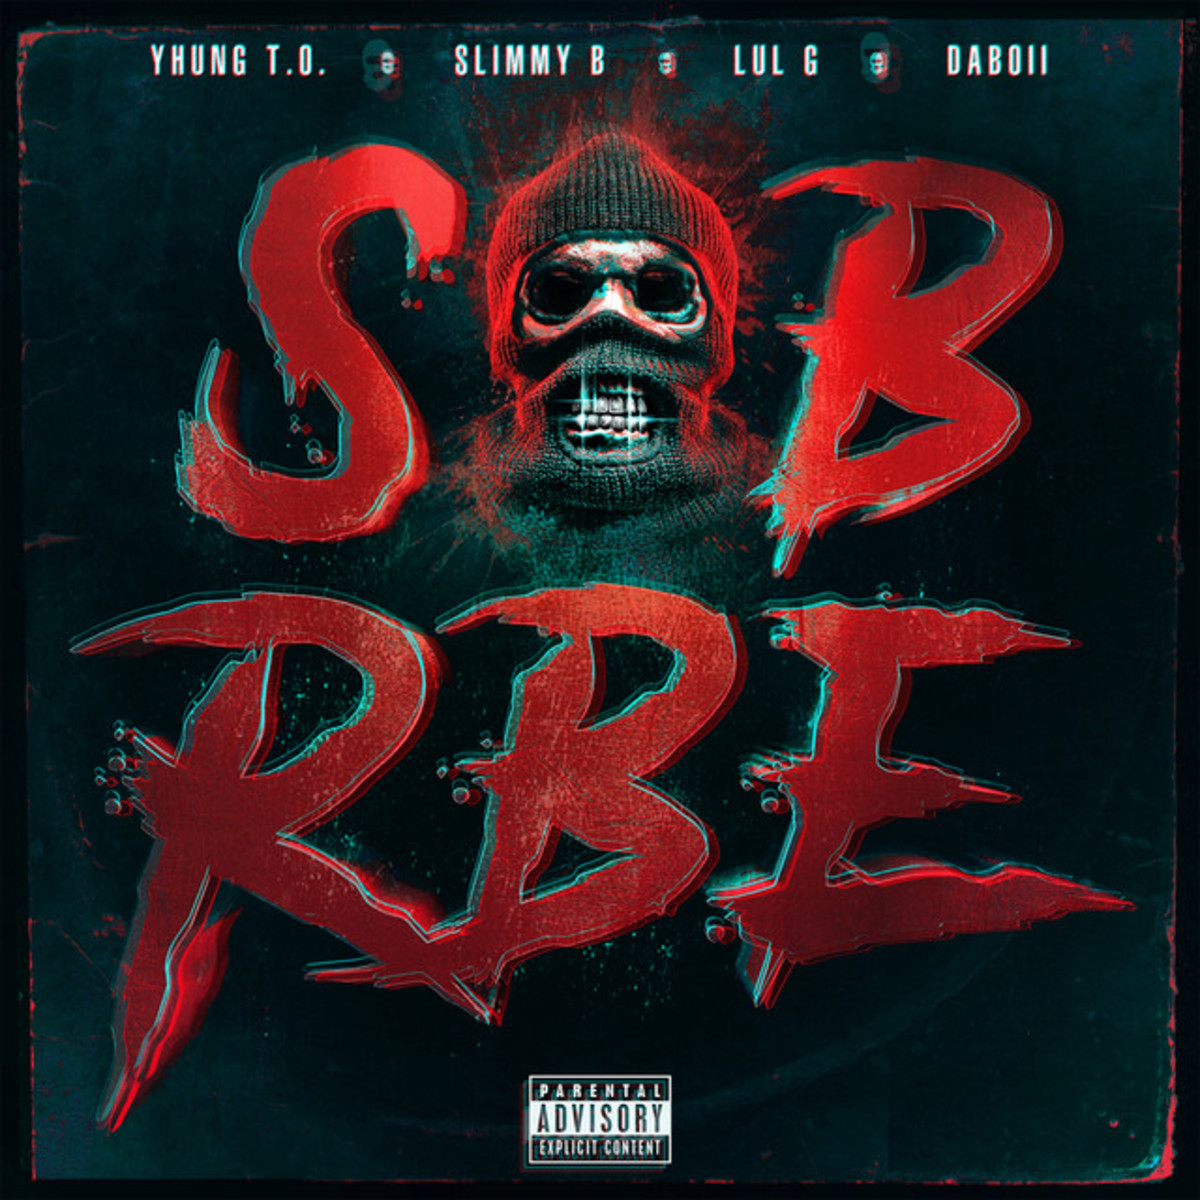 SOB X RBE Gangin Best Albums of 2018